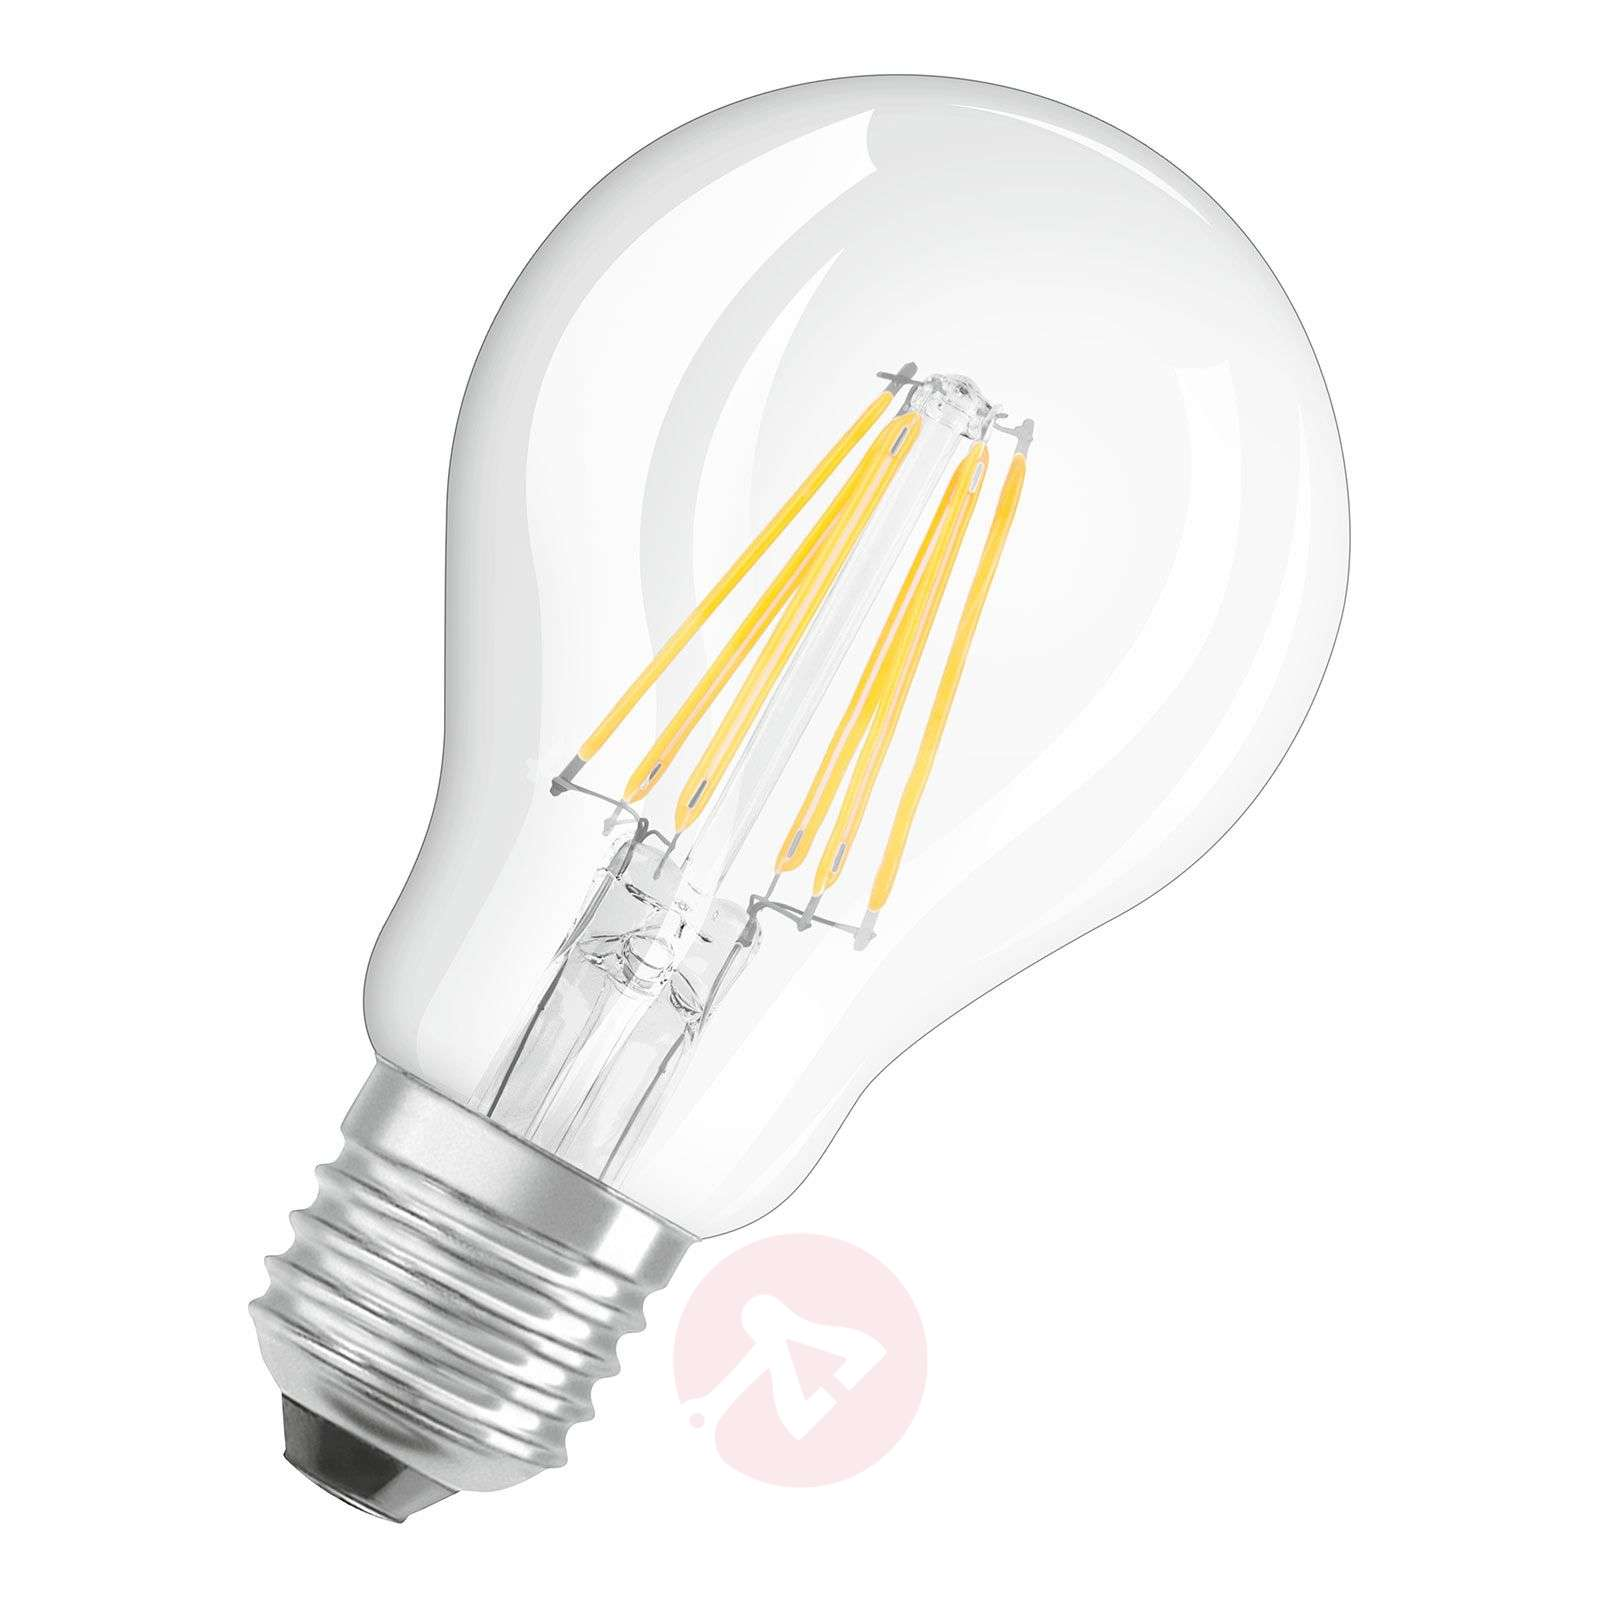 Ampoule à filament LED E27 7 W 827, kit de 2-7260965-03